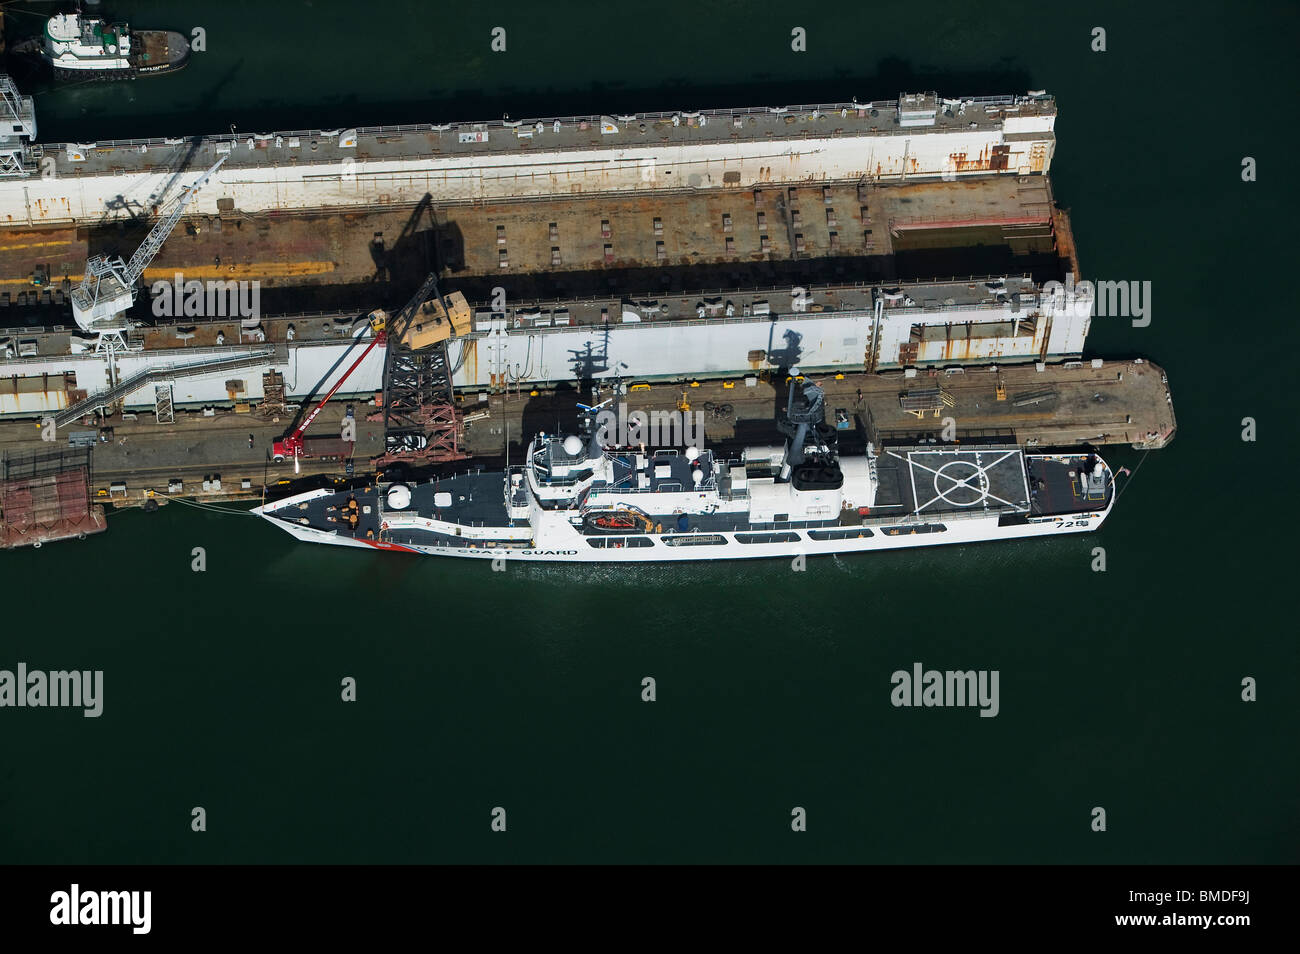 aerial view above United States Coast Guard cutter docked adjacent to San Francisco drydock - Stock Image